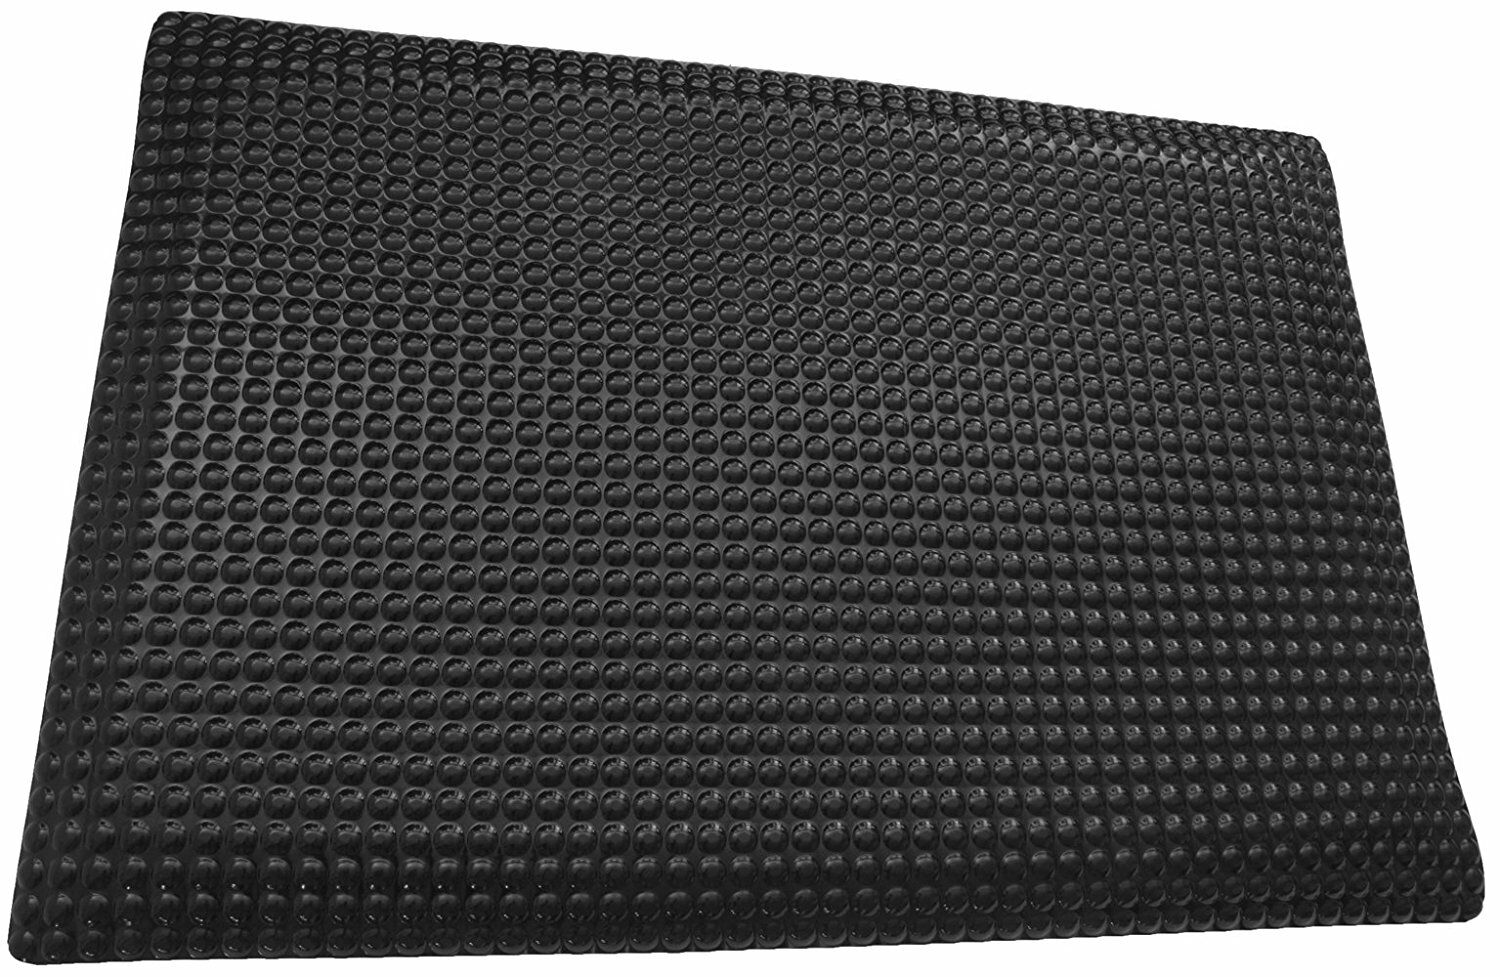 Relfex Anti-Fatigue Comfort Kitchen Mat Mat Size: 2' x 3', Color: Glossy Black